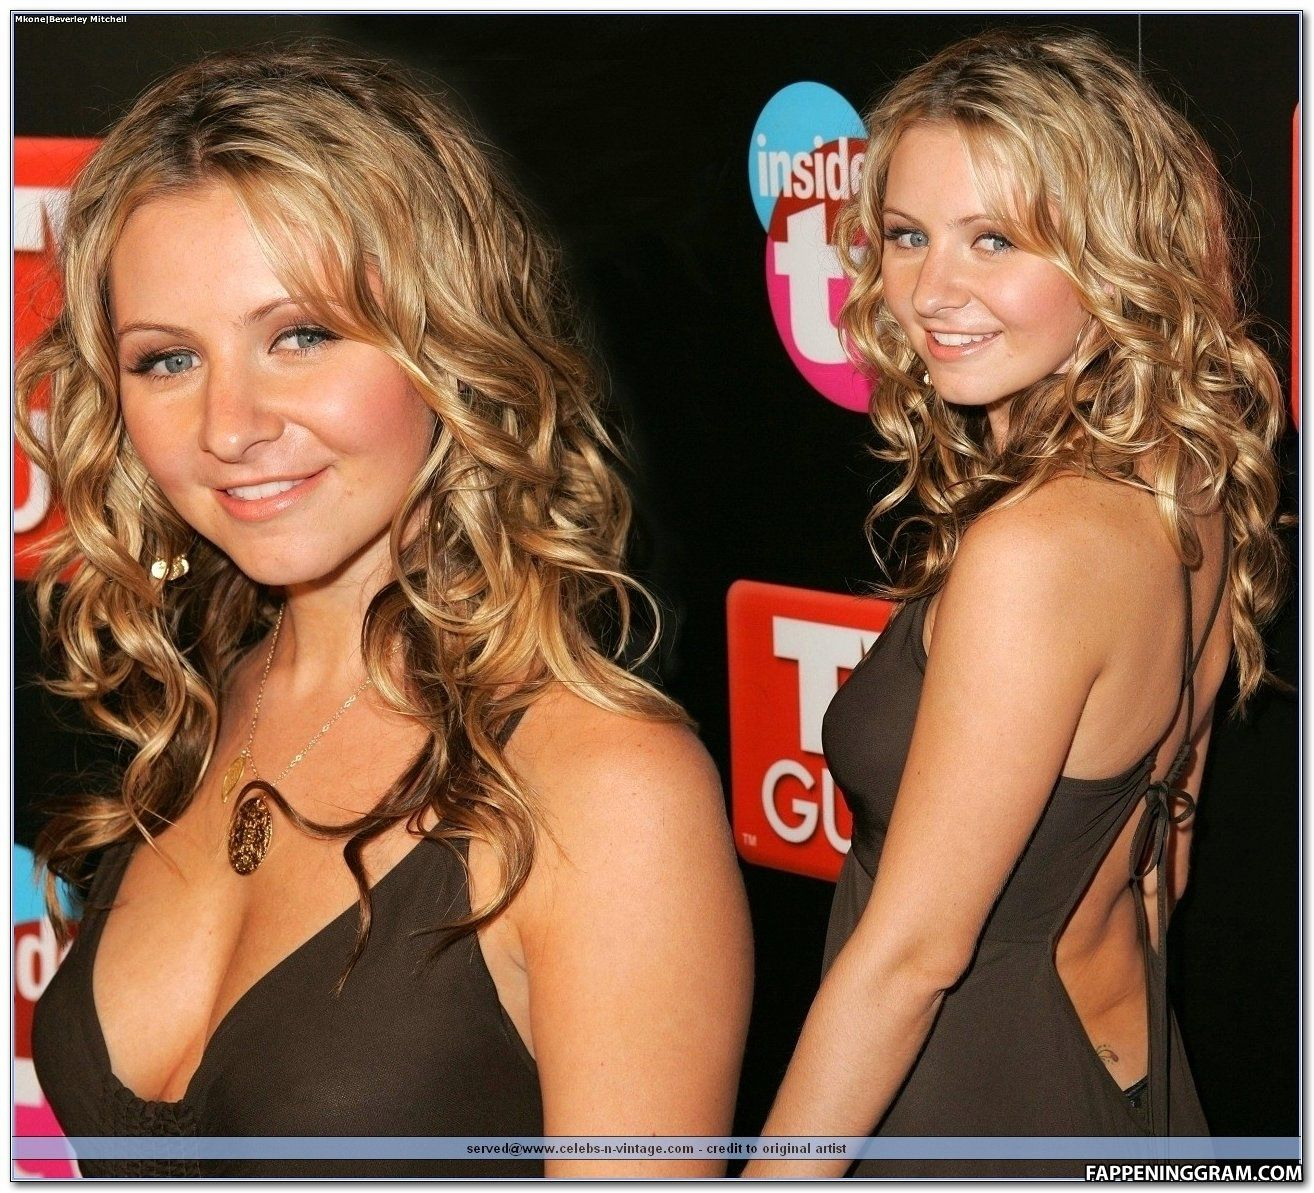 Beverley Mitchell Nude The Fappening - FappeningGram